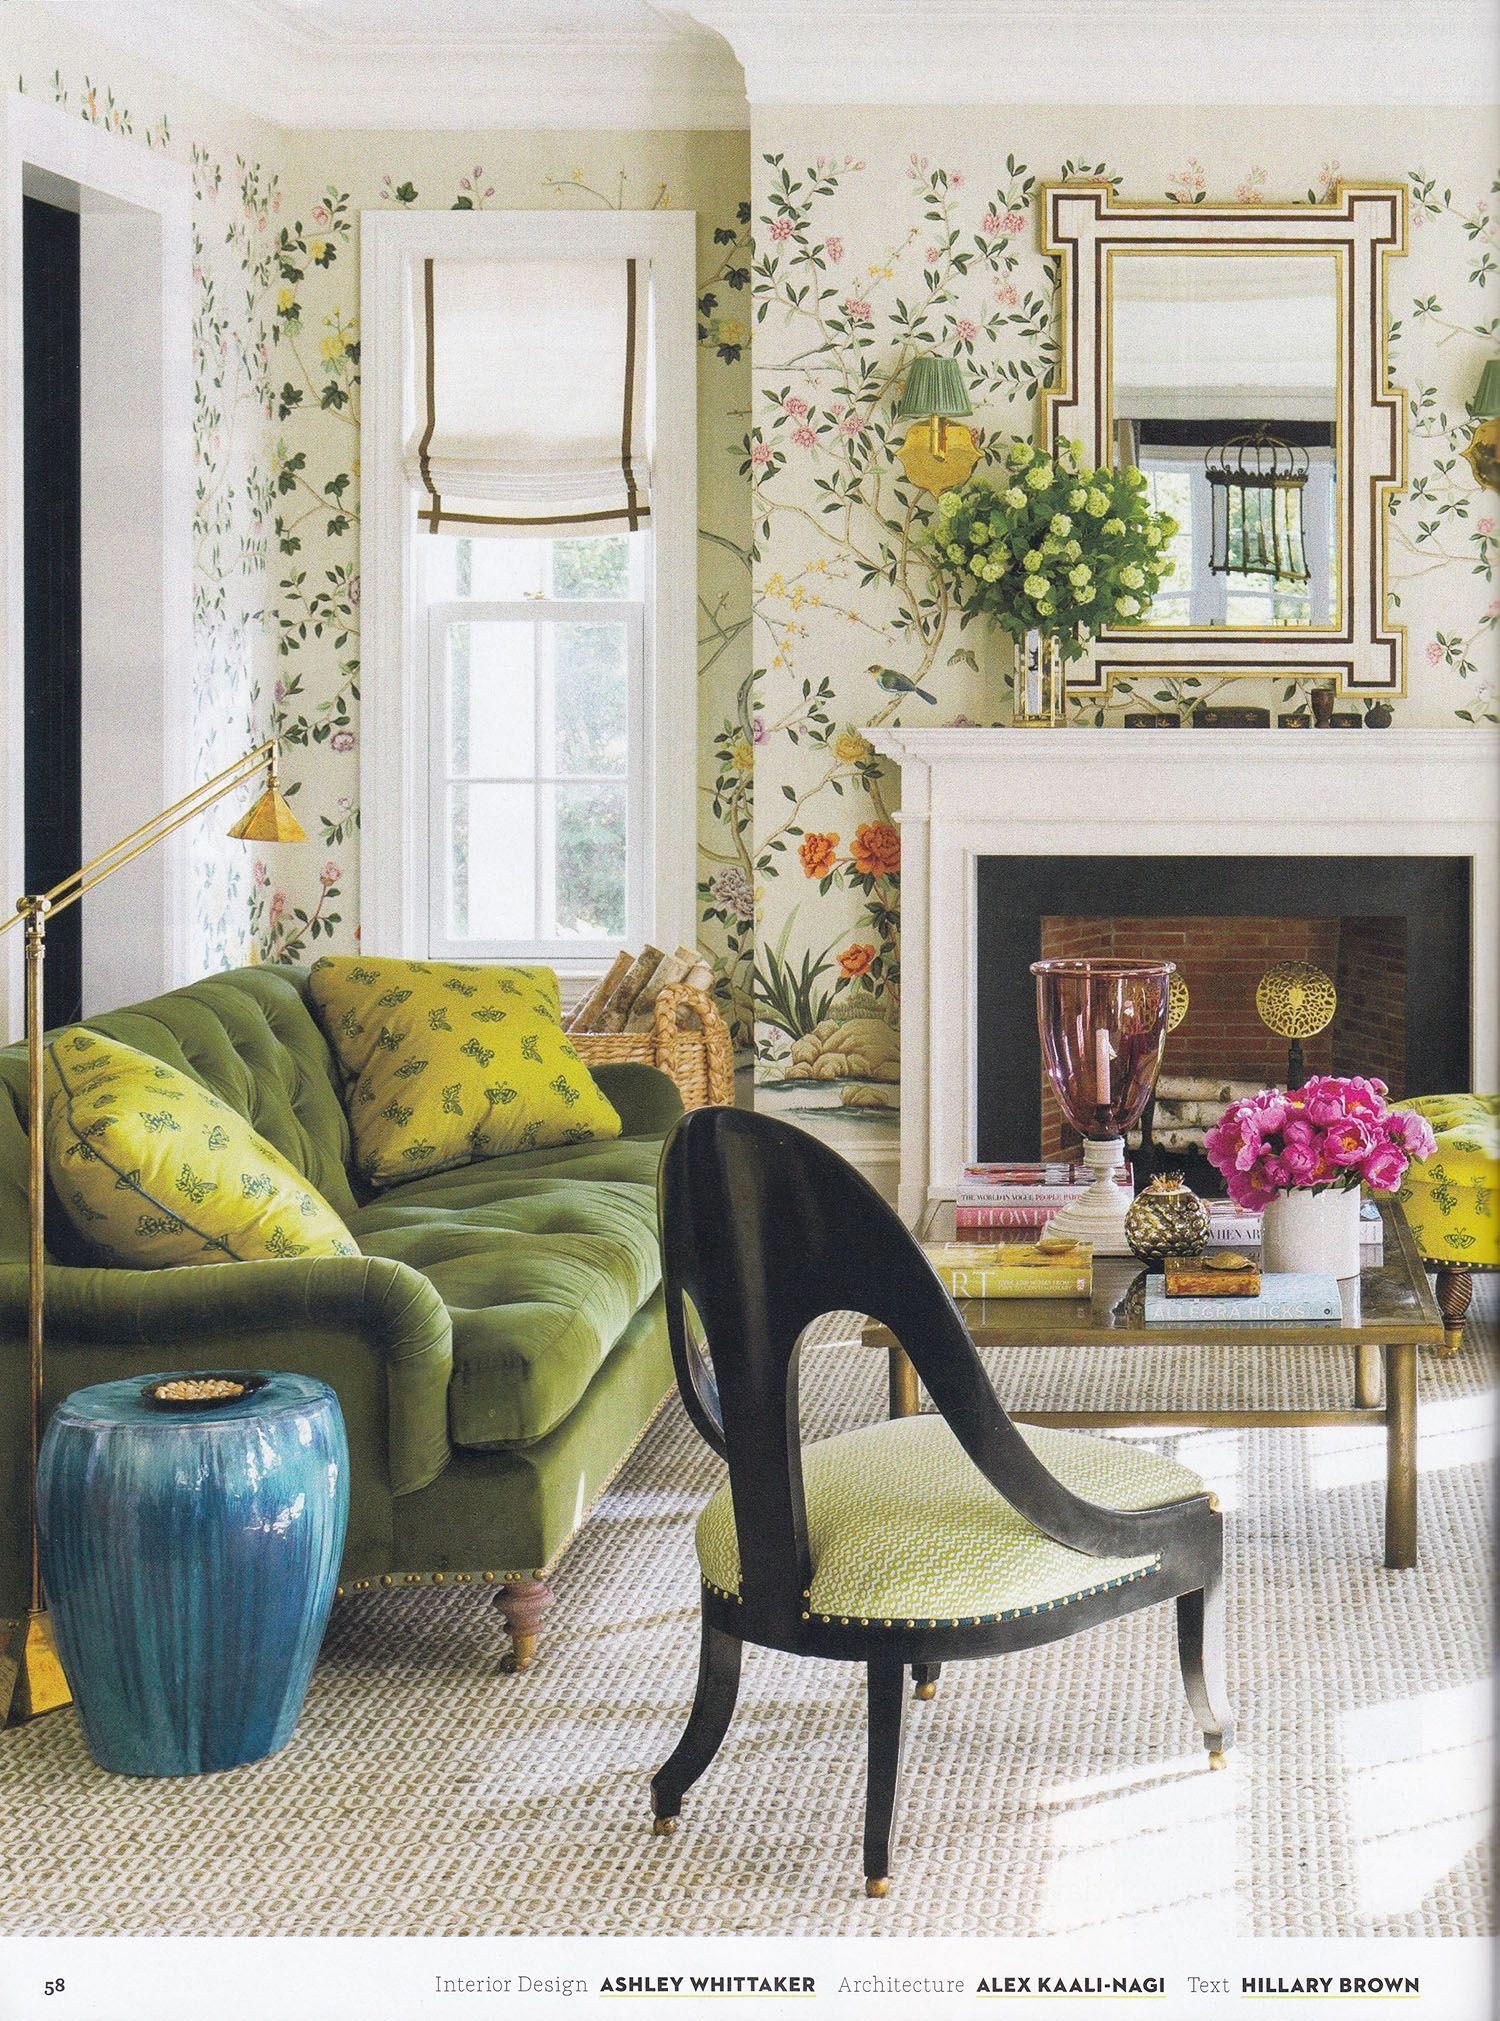 Redecorate My Living Room: Room Ideas Living Room